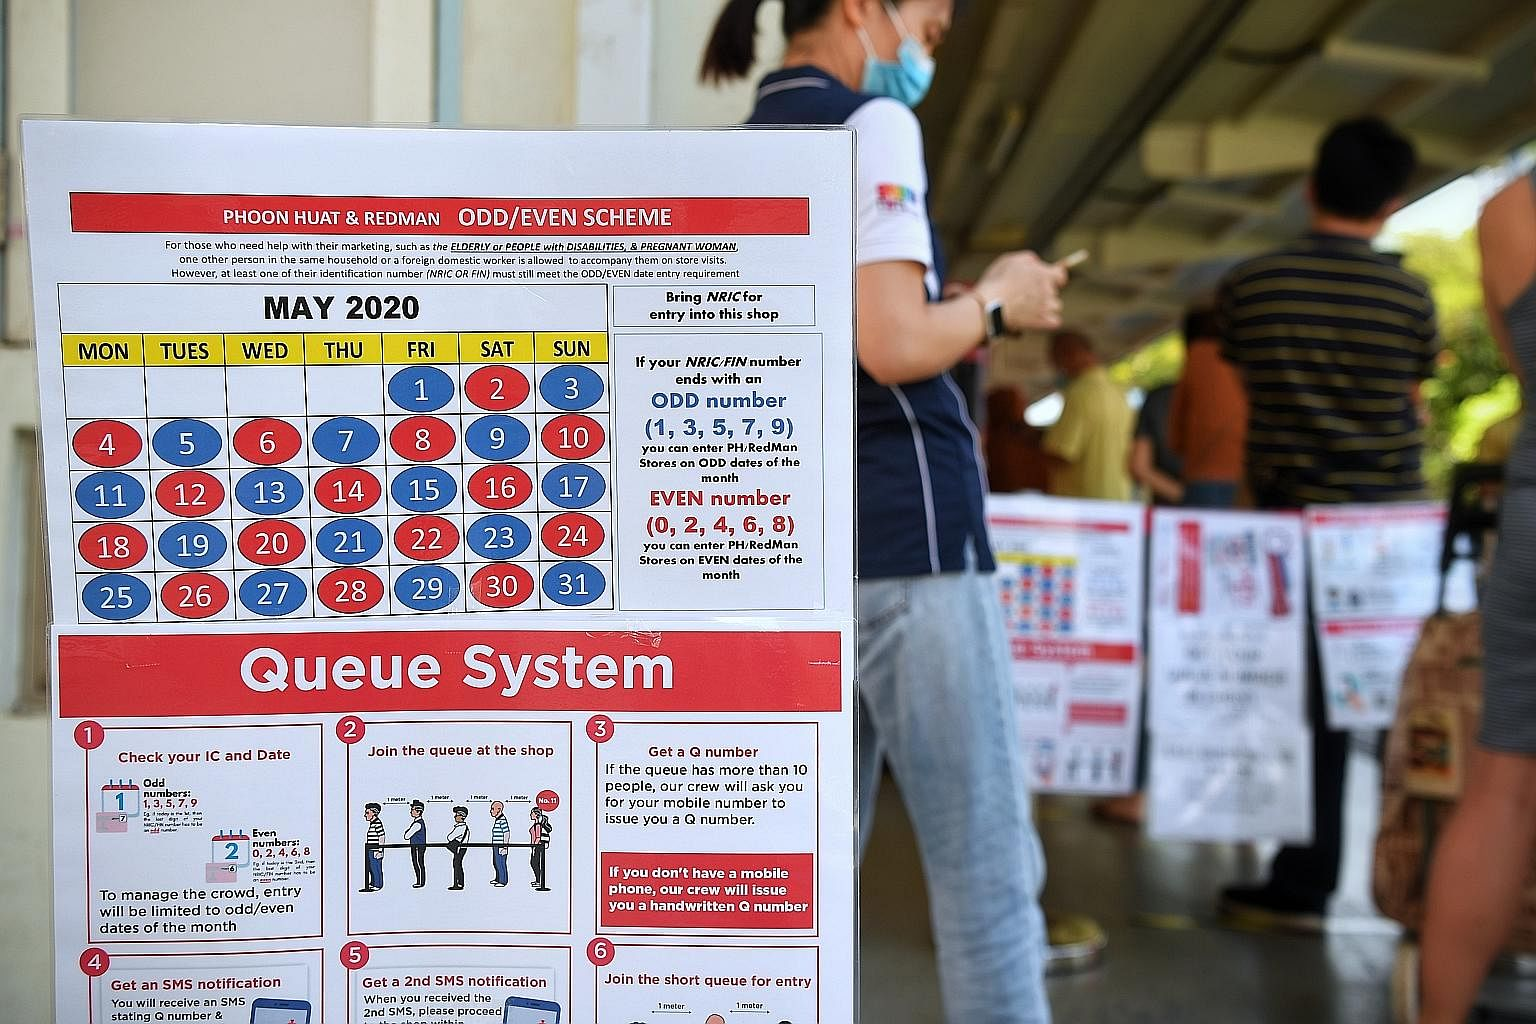 To manage long queues last month, Phoon Huat let buyers into the store depending on the last digit of their identity card numbers. The system was discontinued earlier this month.